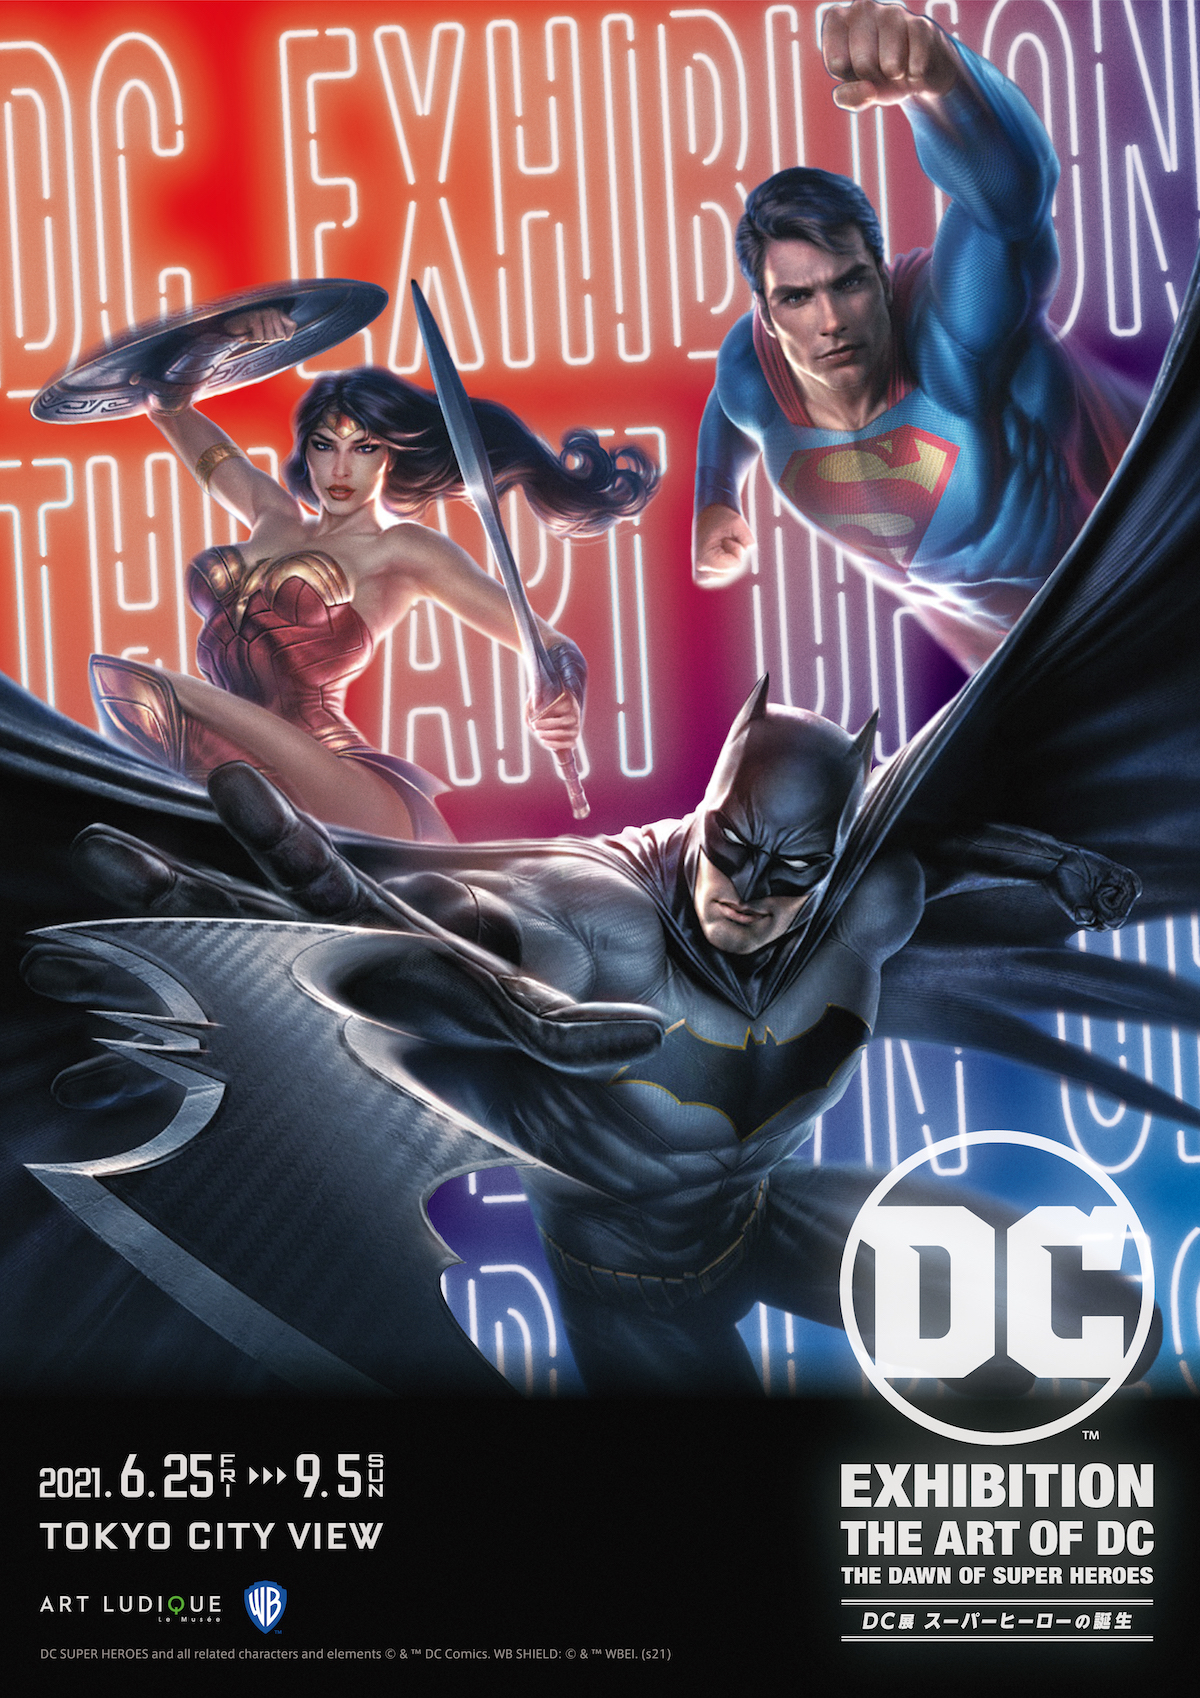 DC SUPER HEROES and all related characters and elements © & ™ DC Comics. WB SHIELD: © & ™ WBEI. (s21)